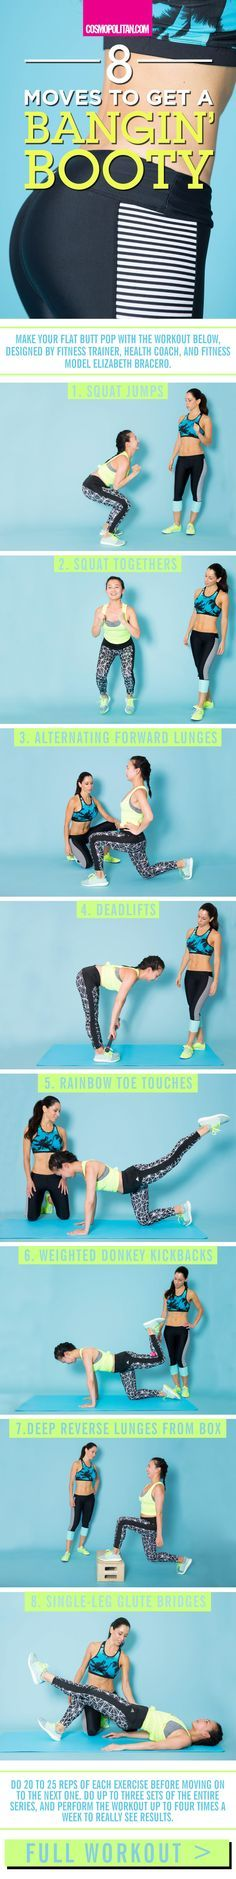 HOW TO GET A BIGGER BUTT: Give your backside a sexy pop (and strength) with this workout and these fitness tips from fitness trainer, health coach, and fitness model Elizabeth Bracero. Do these butt moves at home or at the gym — this simple workout can be done anywhere. Click through for the full workout info and instructional gifs that teach you how to correctly do each move.